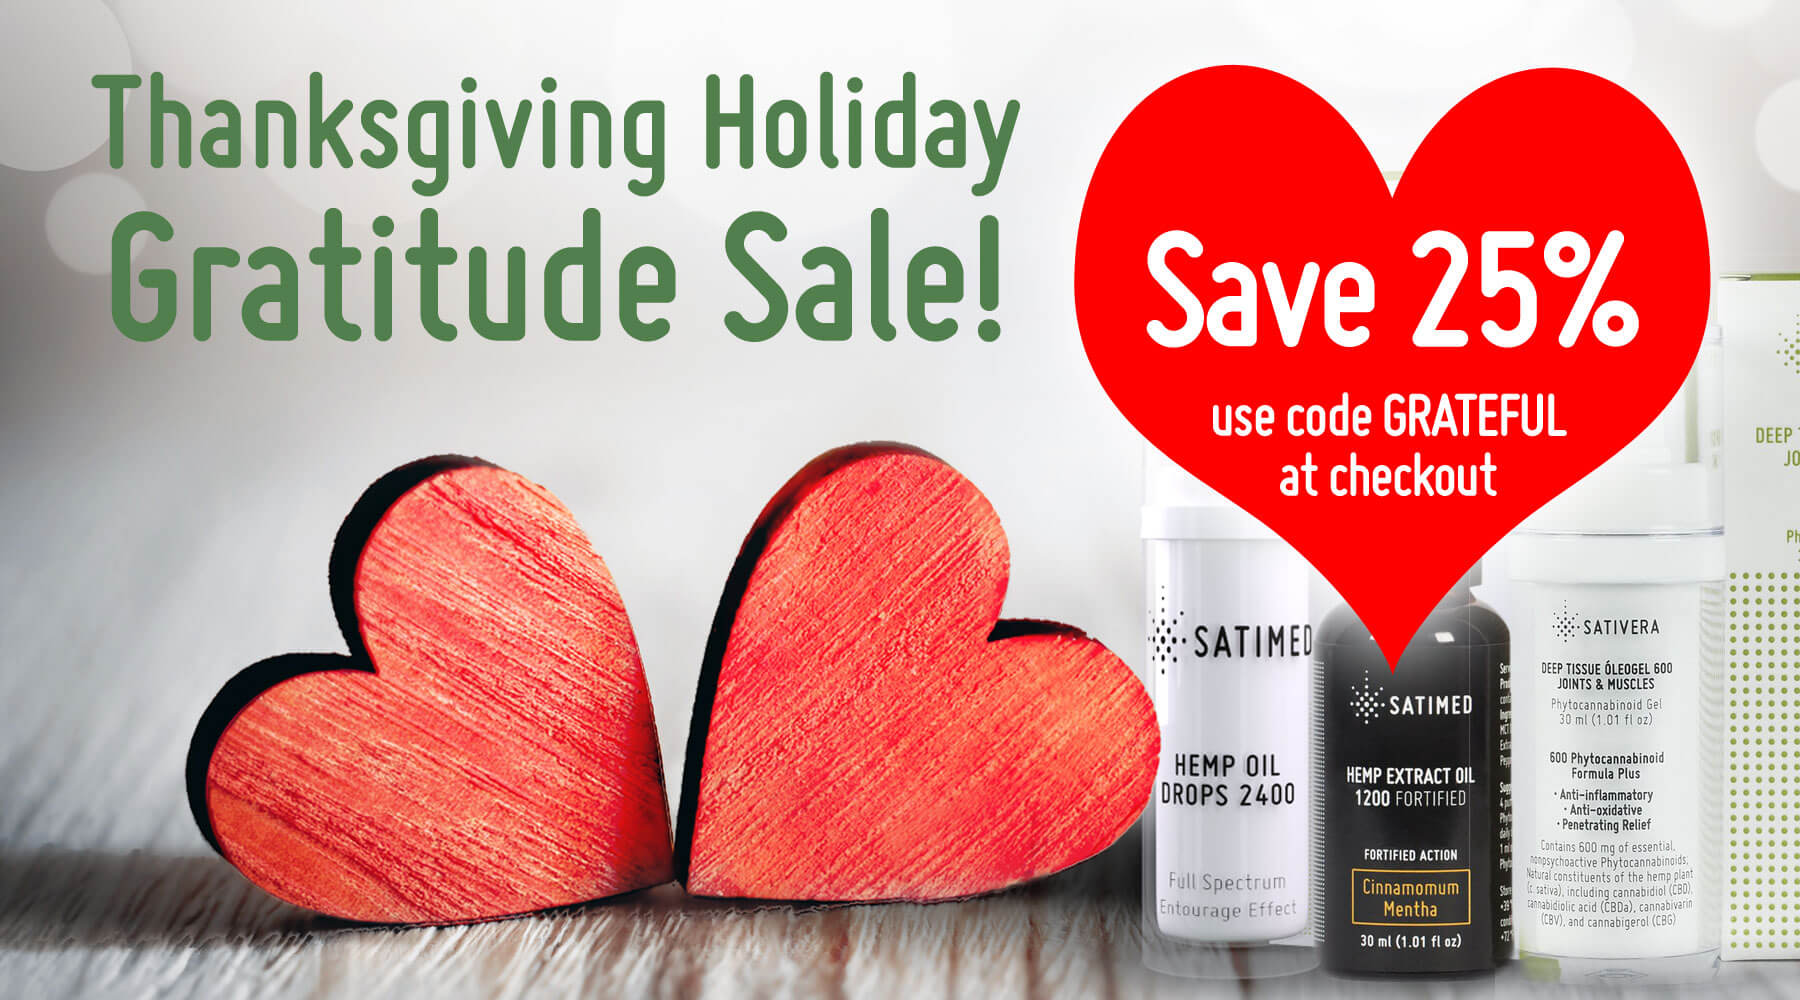 Save 25% on CBD Oil Products